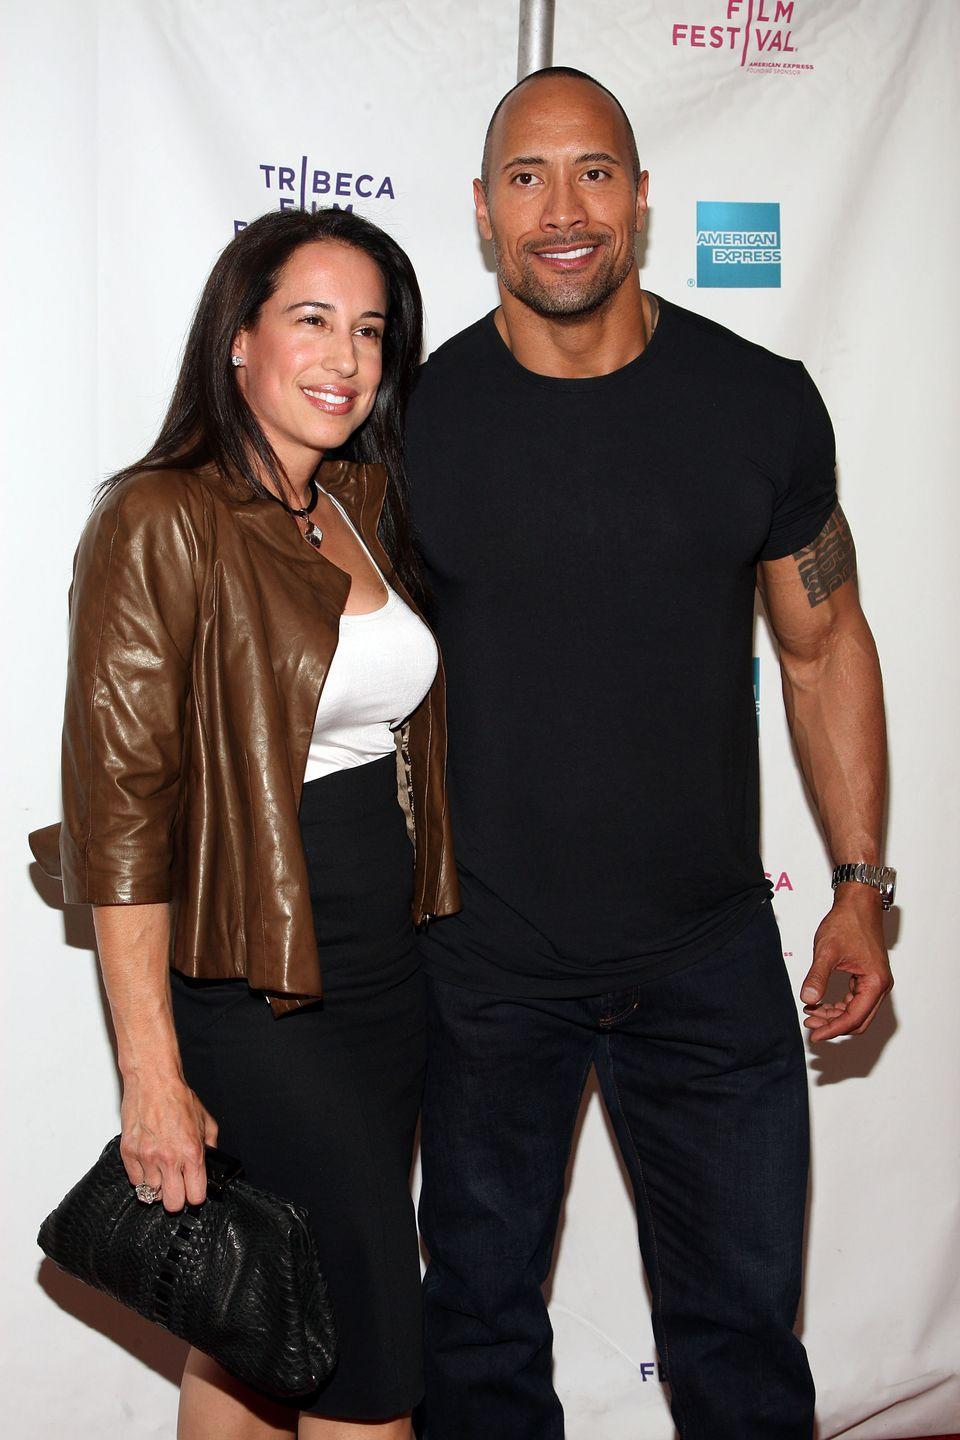 <p>Johnson and Garcia co-founded the production company Seven Bucks Productions while they were married and, despite their 2008 divorce, they continue to run it together, as well as co-parent their daughter Simone.</p>